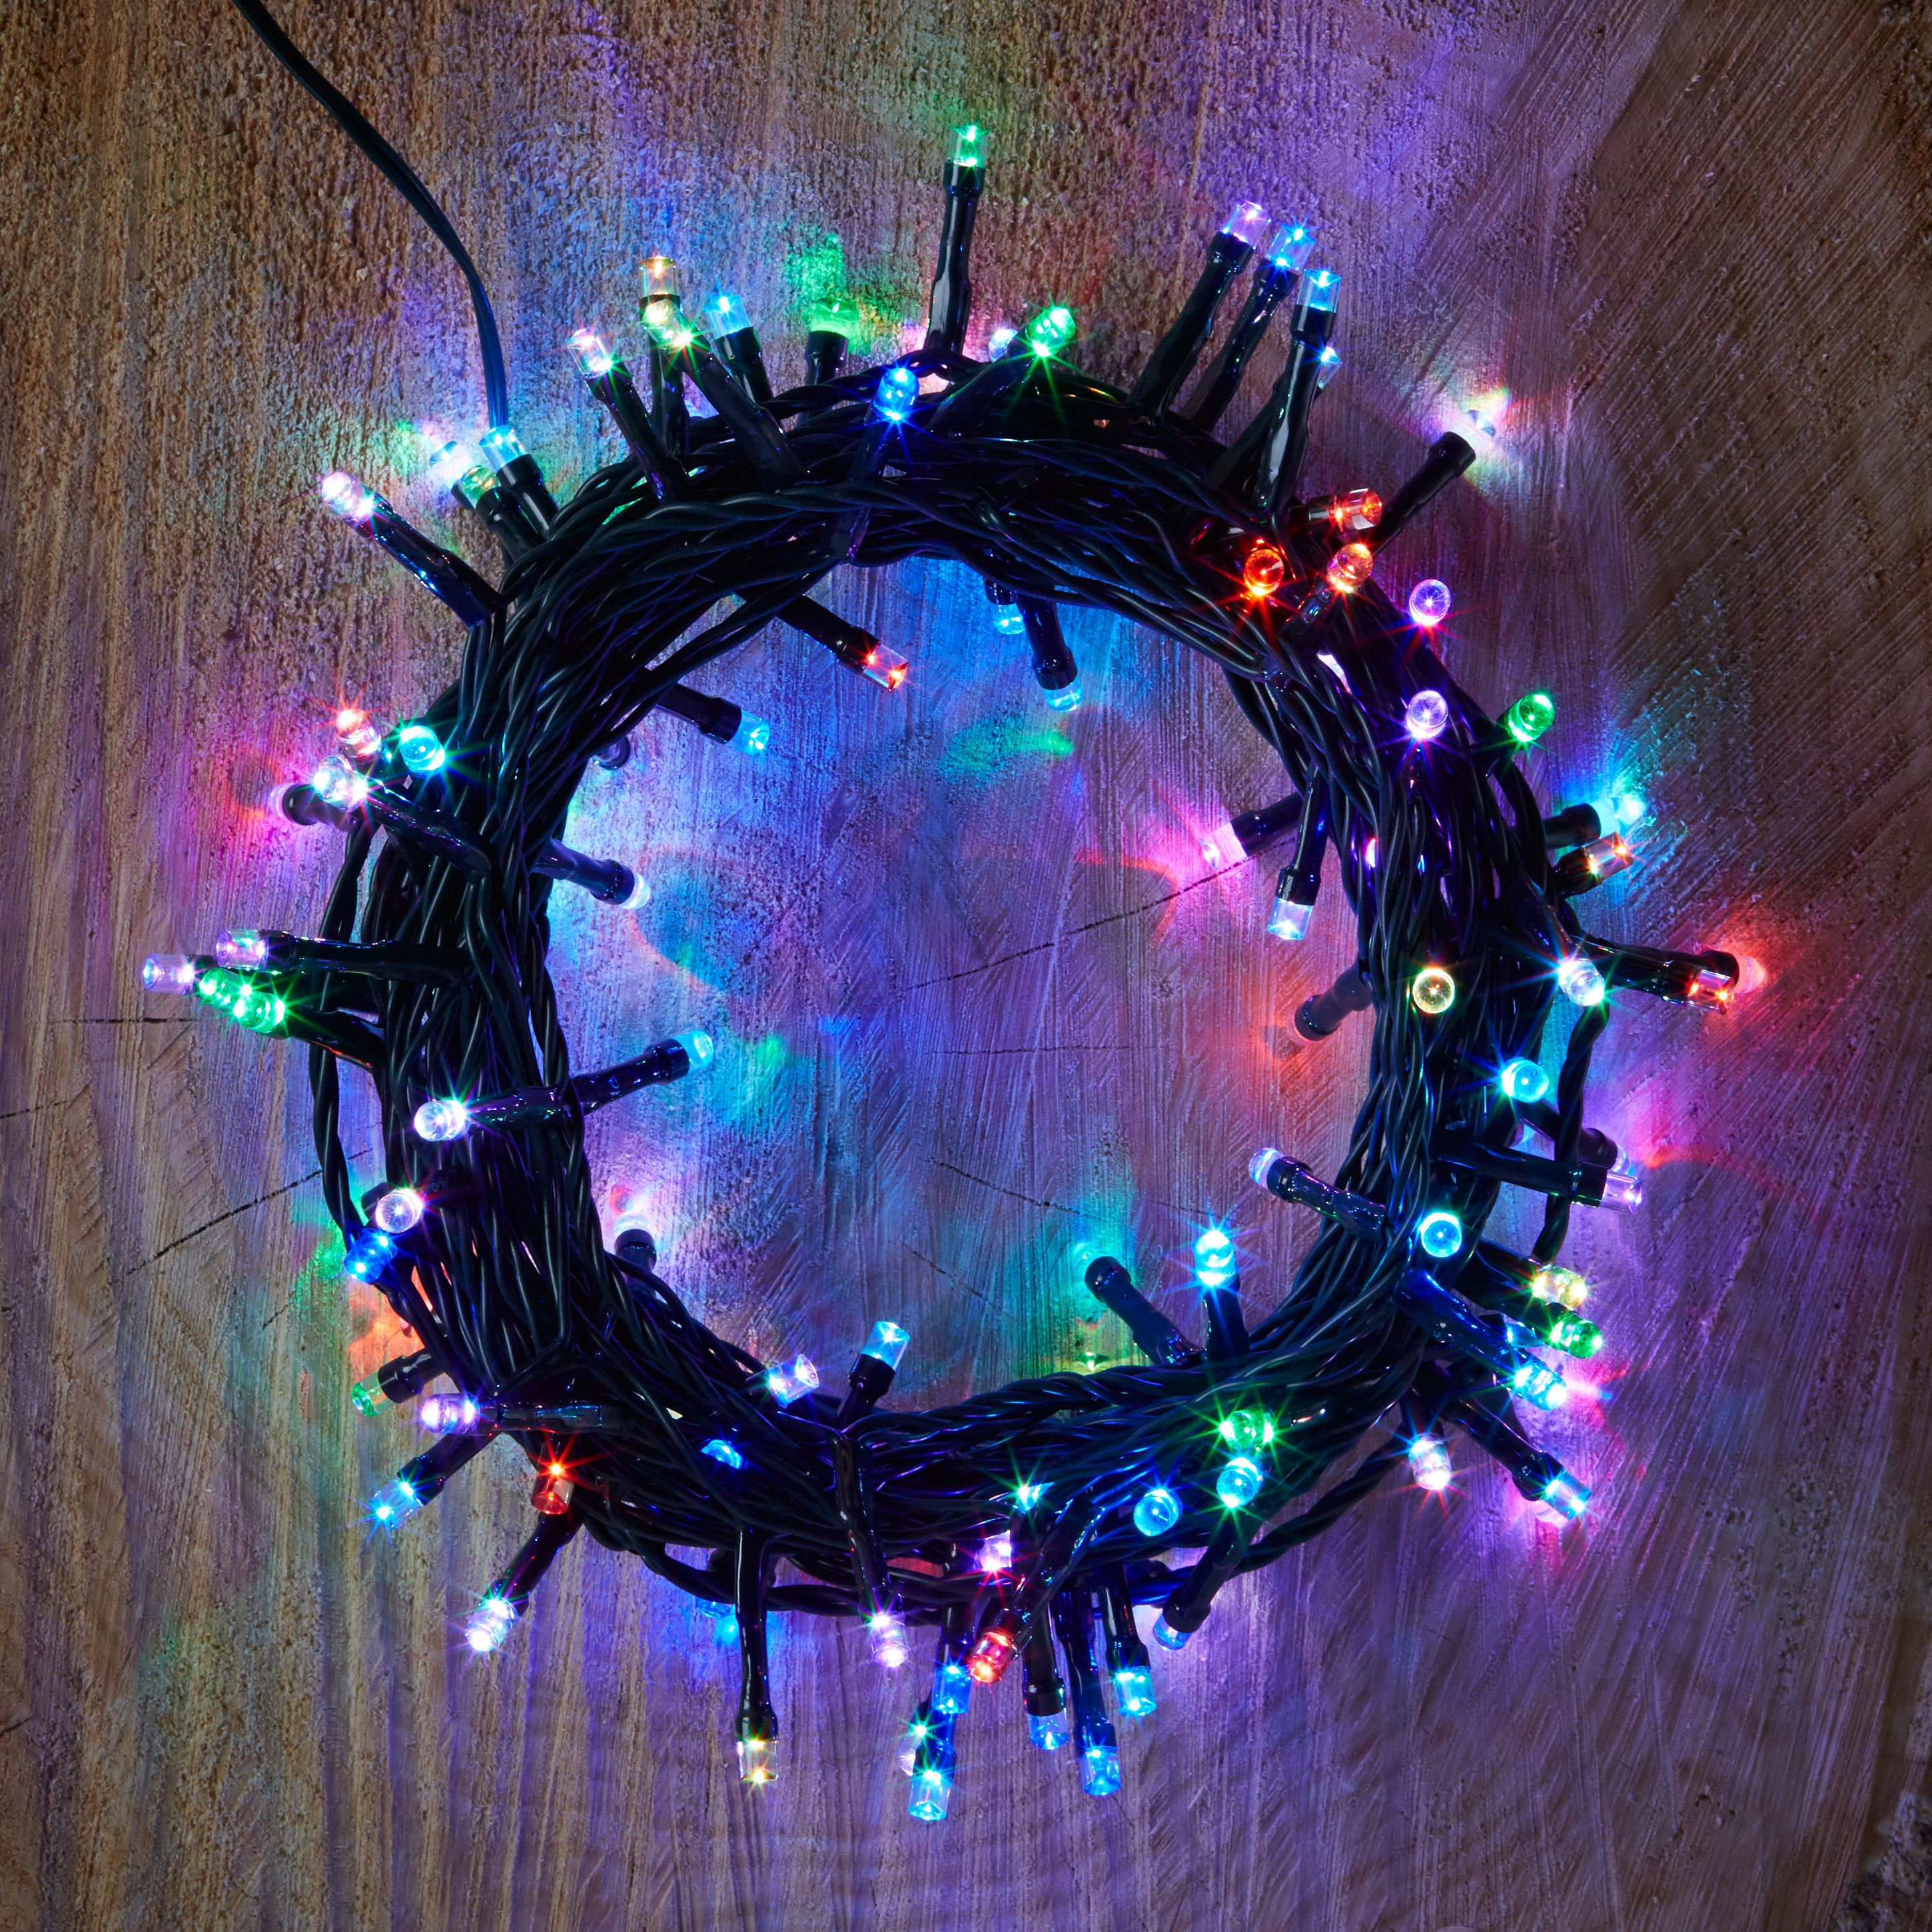 Led String Lights Diy : 120 Colour Changing LED String Lights Departments DIY at B&Q